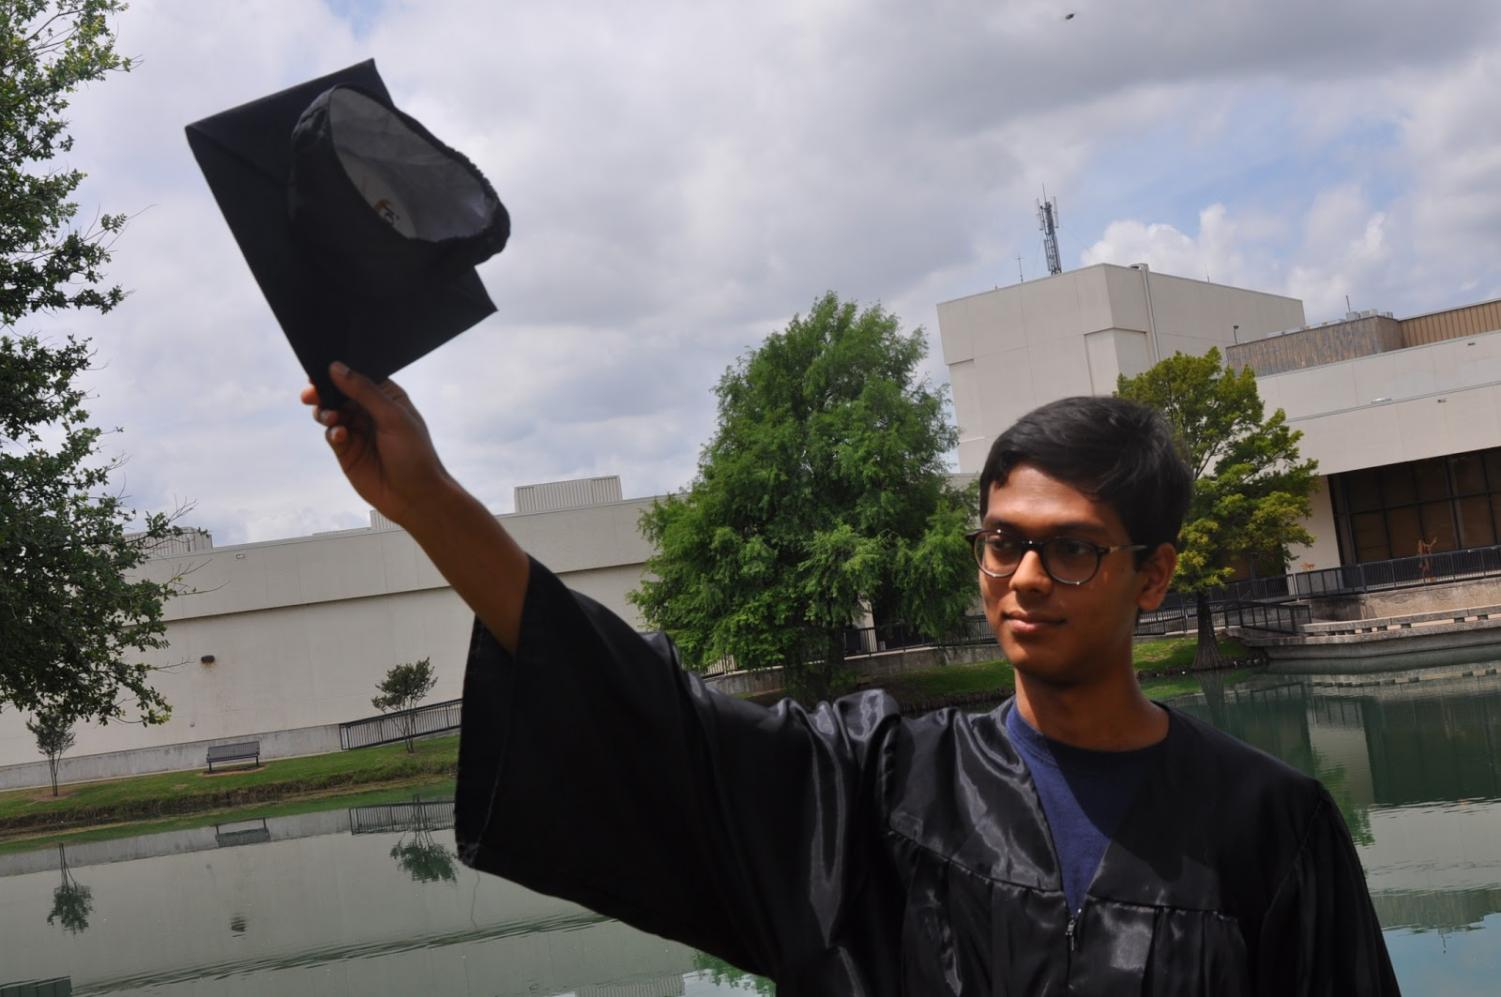 Senior Mohit Gupta celebrates his title of salutatorian by the school pond with a graduation cap and gown.